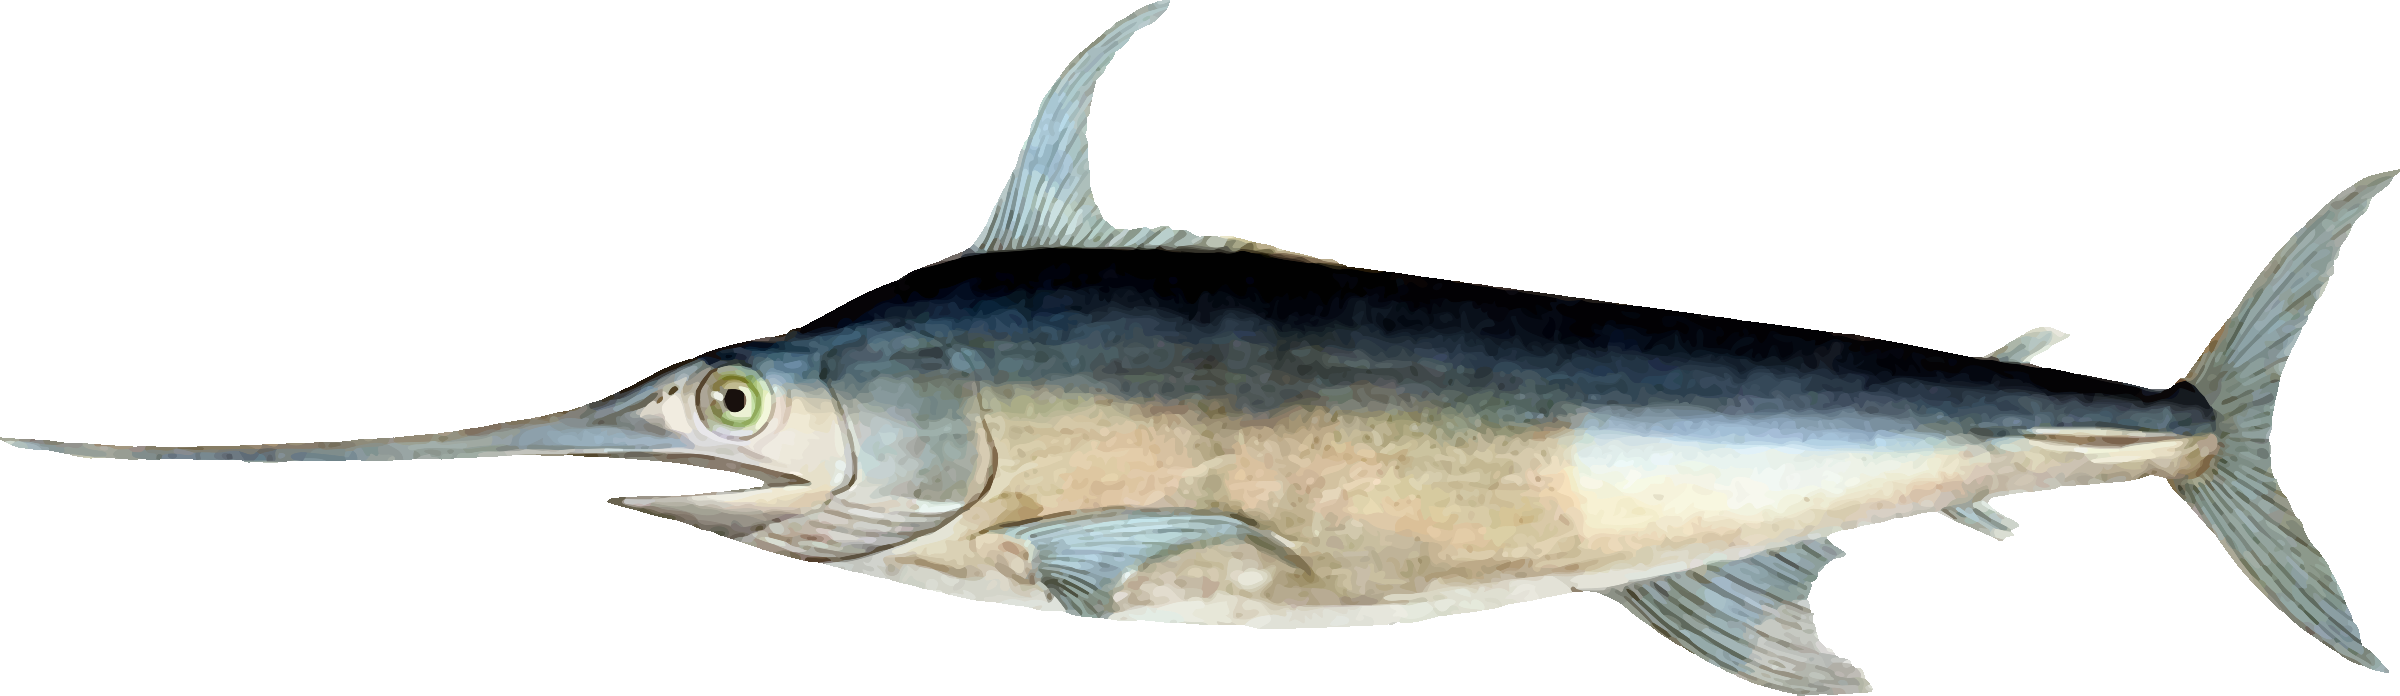 Sword fish clipart picture Swordfish 3 Icons PNG - Free PNG and Icons Downloads picture